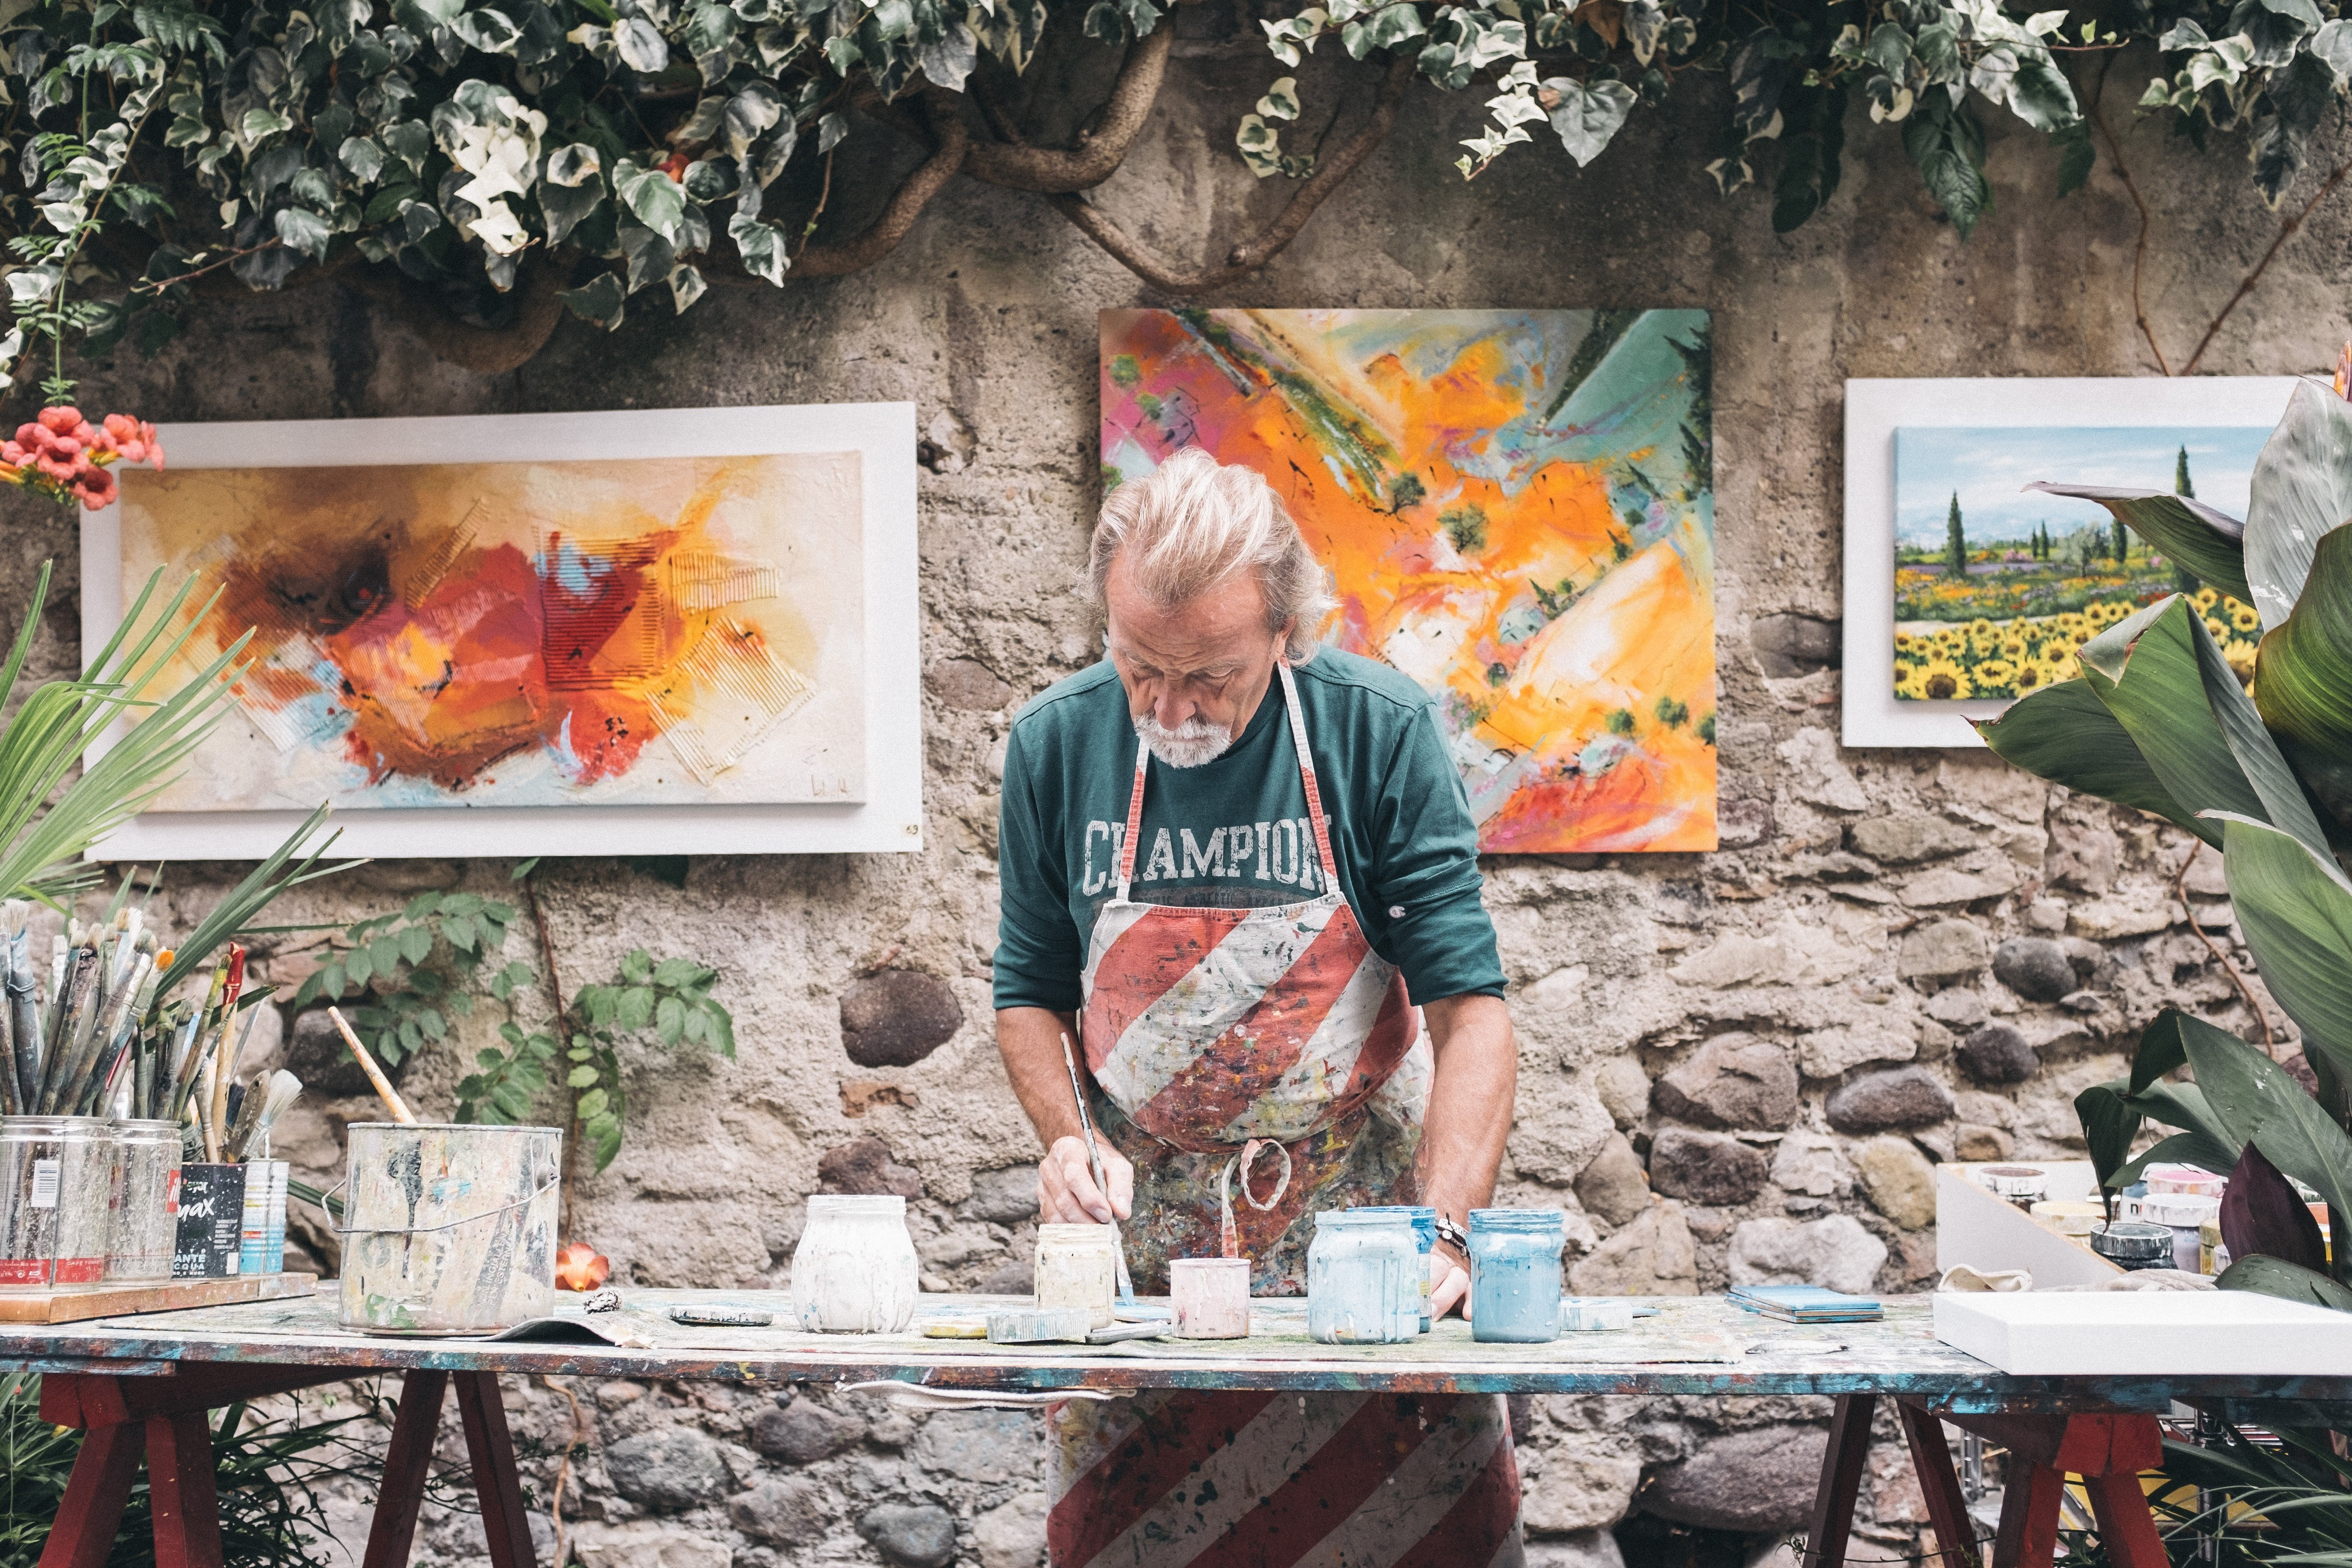 An artist slaving over a painting | Source: Unsplash.com